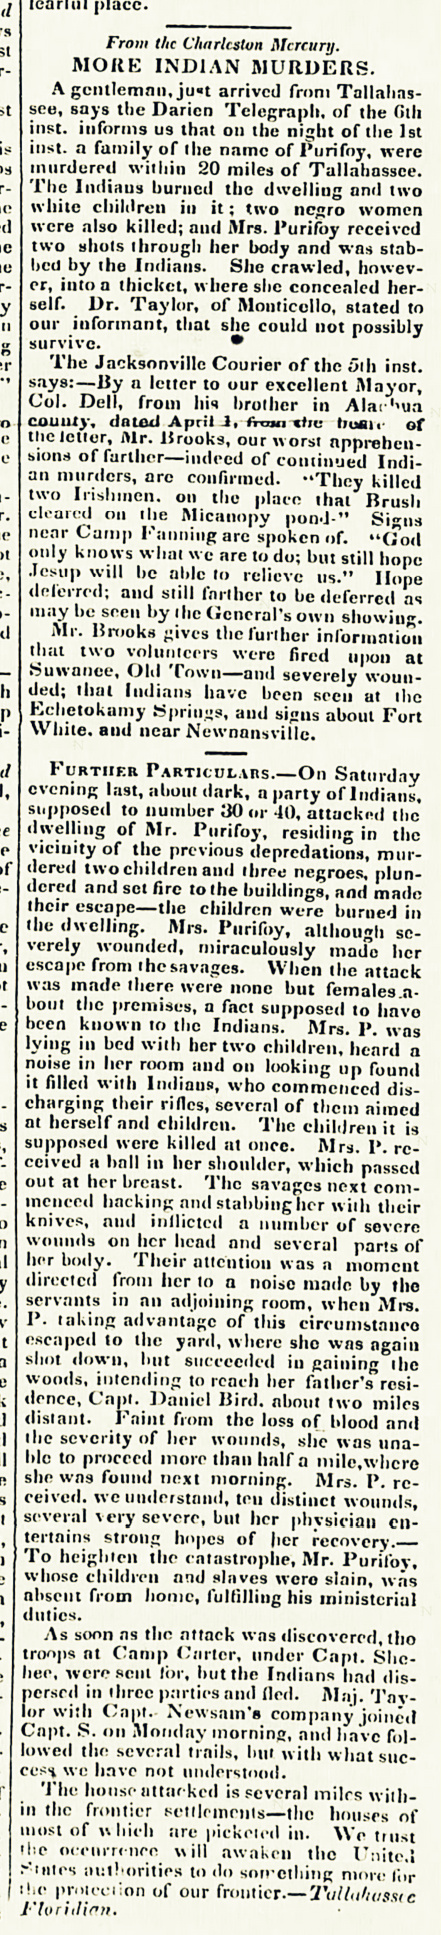 Edgefield Advertiser reports details of the Peurifoy Masacre.